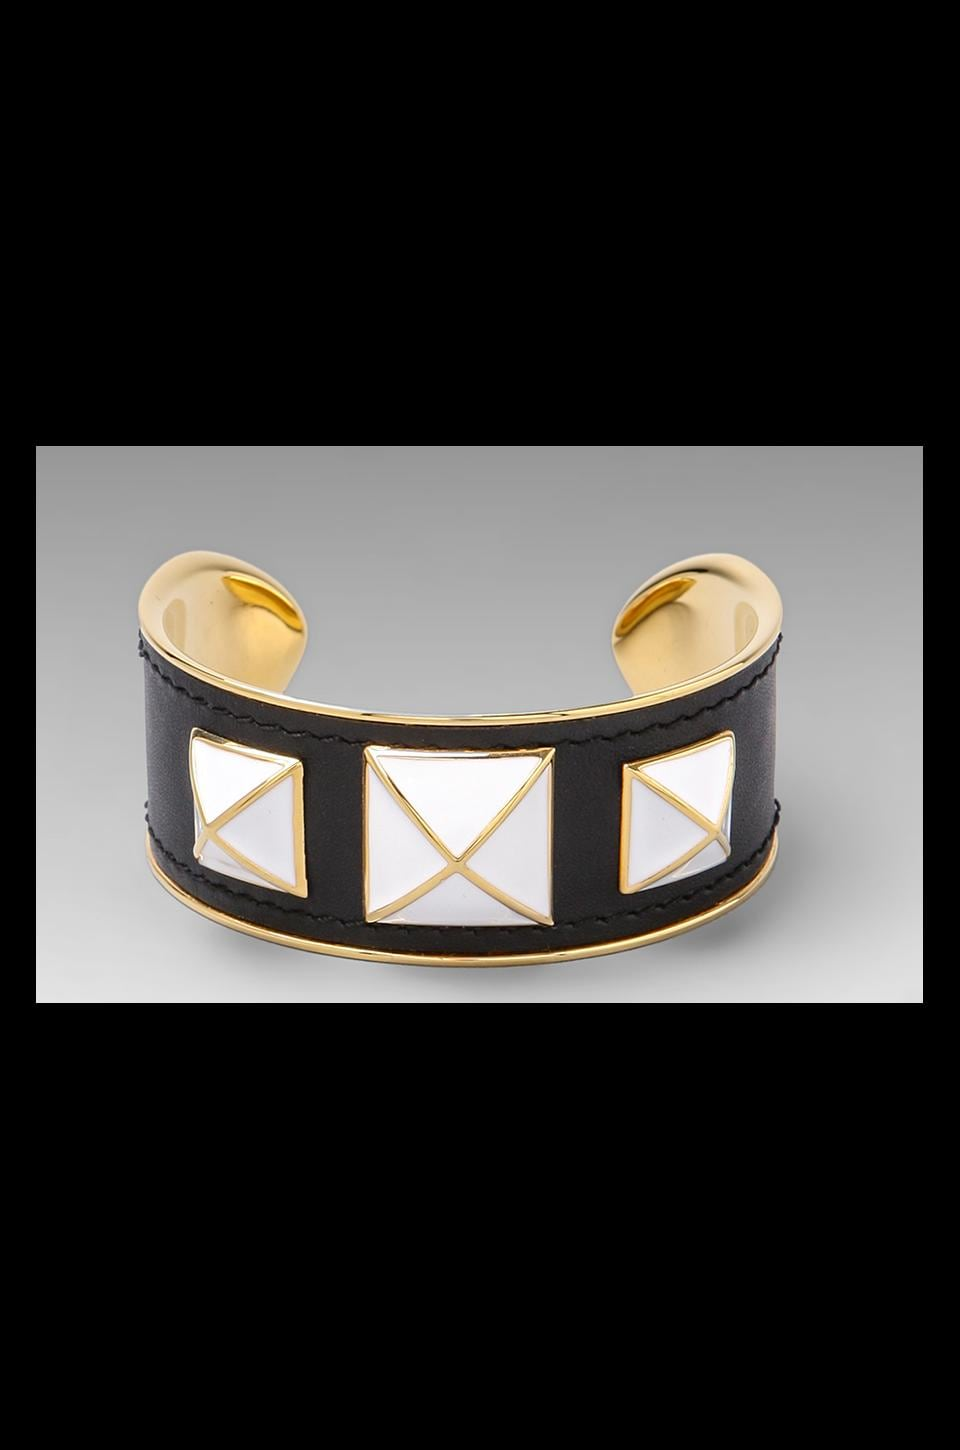 Rebecca Minkoff Small Enamel Stud Bracelet in Gold/Black